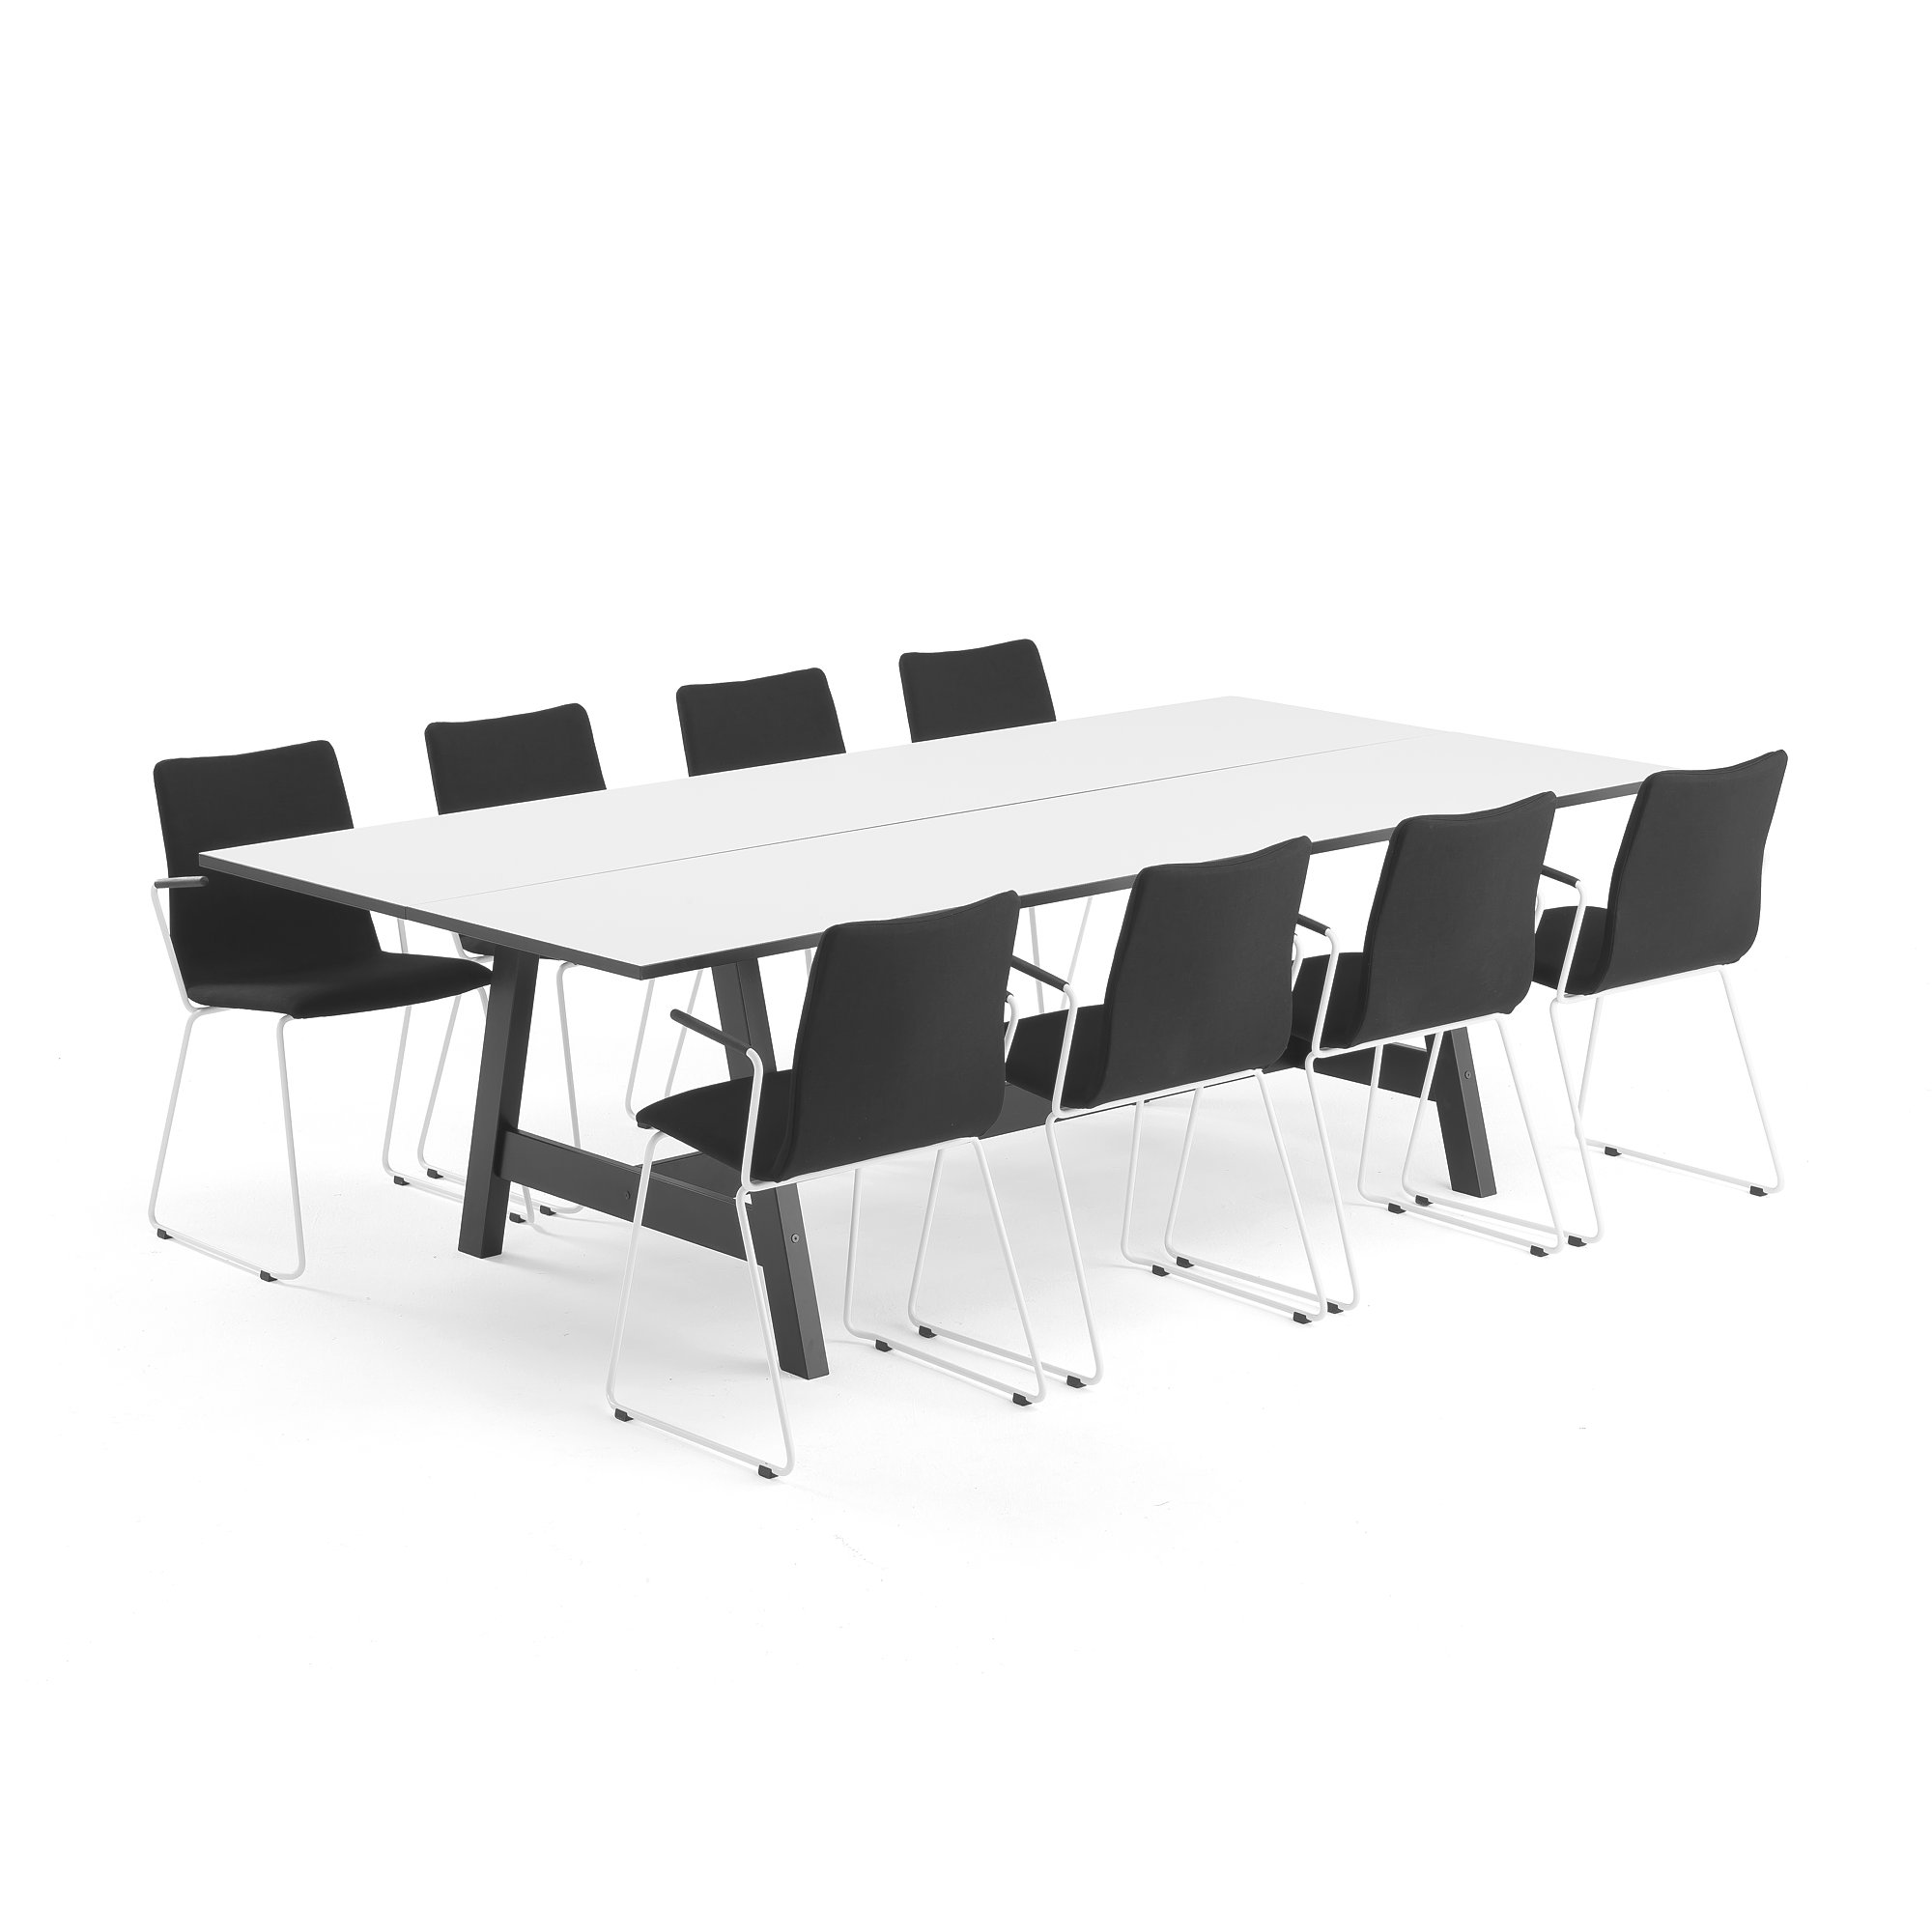 Modern Furniture Ottawa Conference Package Deal Nomad Ottawa 1 Table And 8 Black Chairs Aj Products Ireland